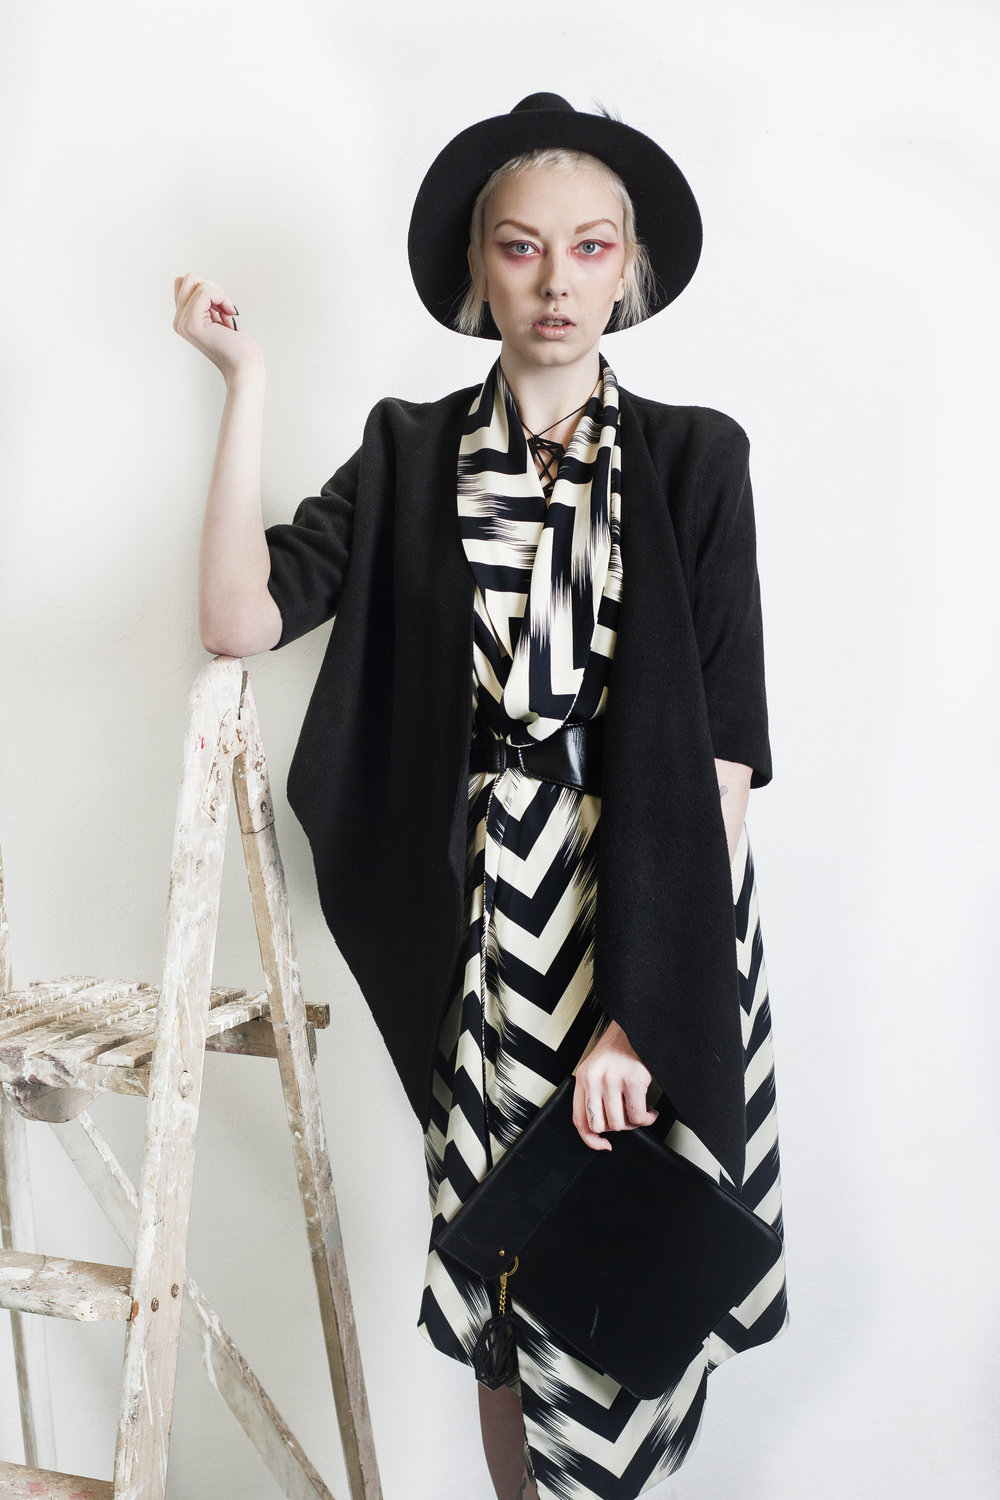 zaramia-ava-zaramiaava-leeds-fashion-designer-ethical-sustainable-tailored-minimalist-editorial-print-black-belt-dress-versatile-drape-cowl-styling-studio-womenswear-models-photoshoot-black-white-jacket-hat-monochrome-2.jpg